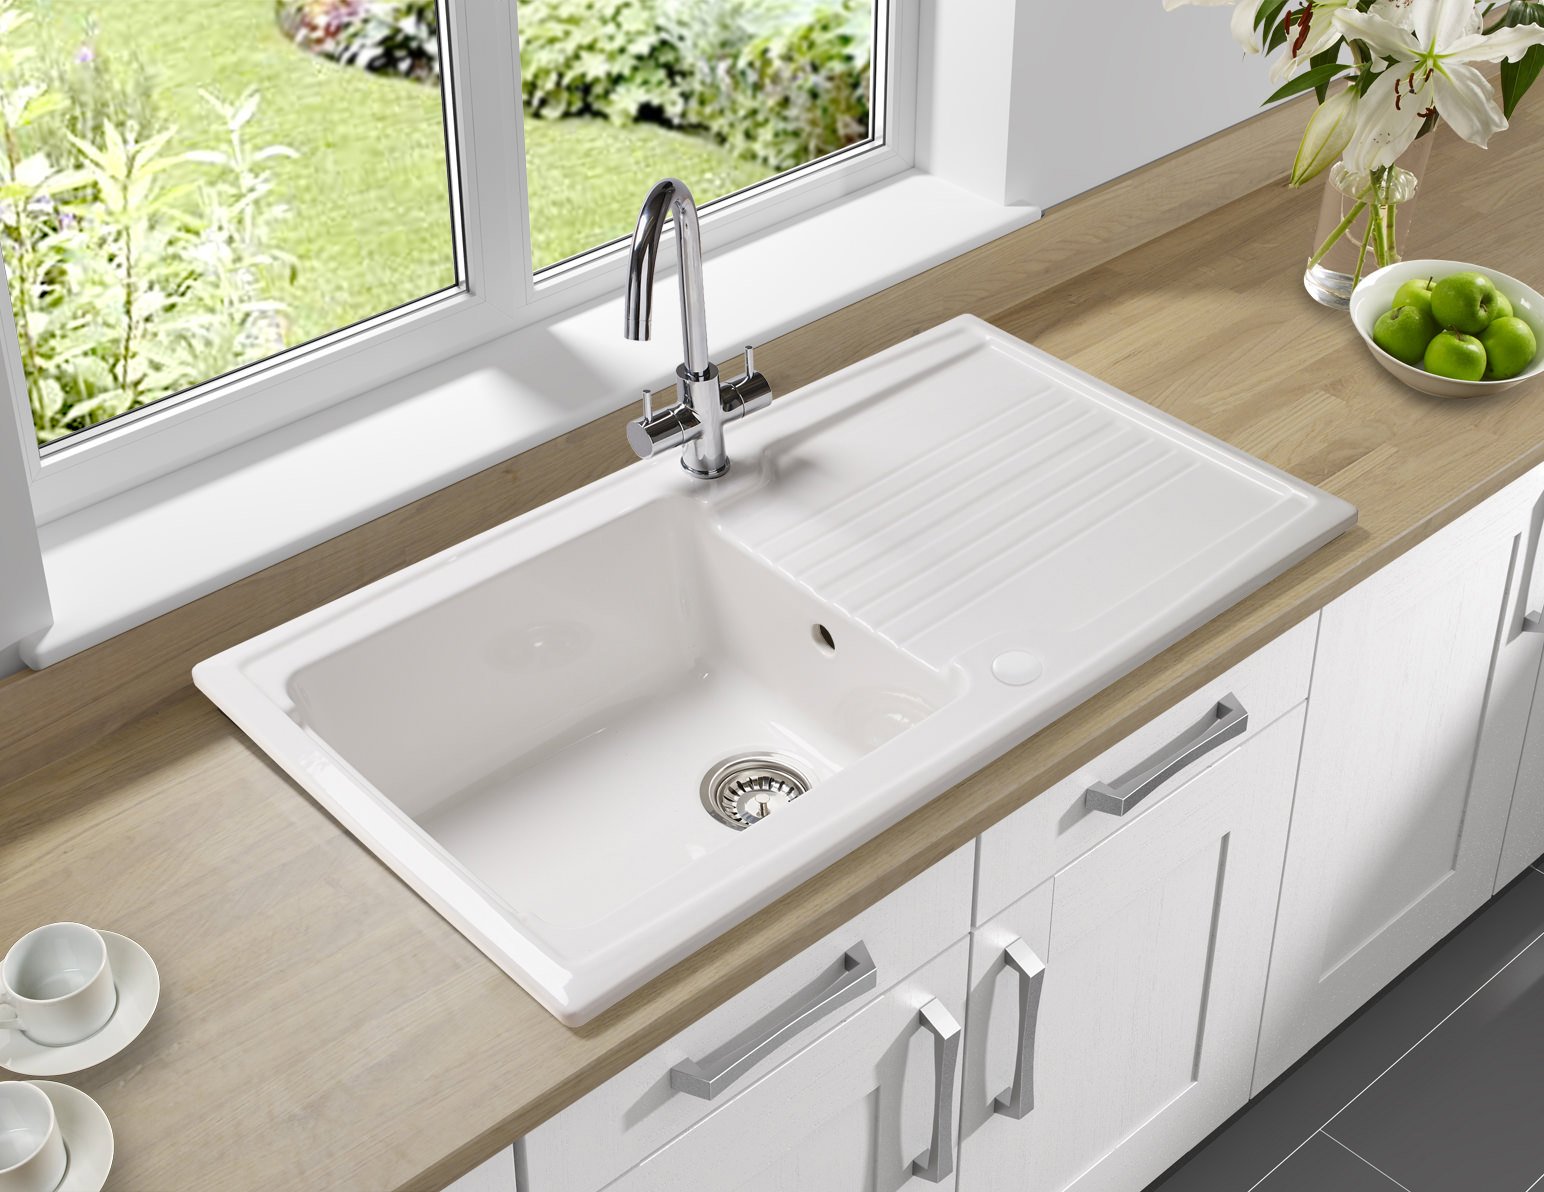 Which Kitchen Sink : Astracast Equinox 1.0 Bowl Ceramic Inset Kitchen Sink - EQ10WHHOMESK